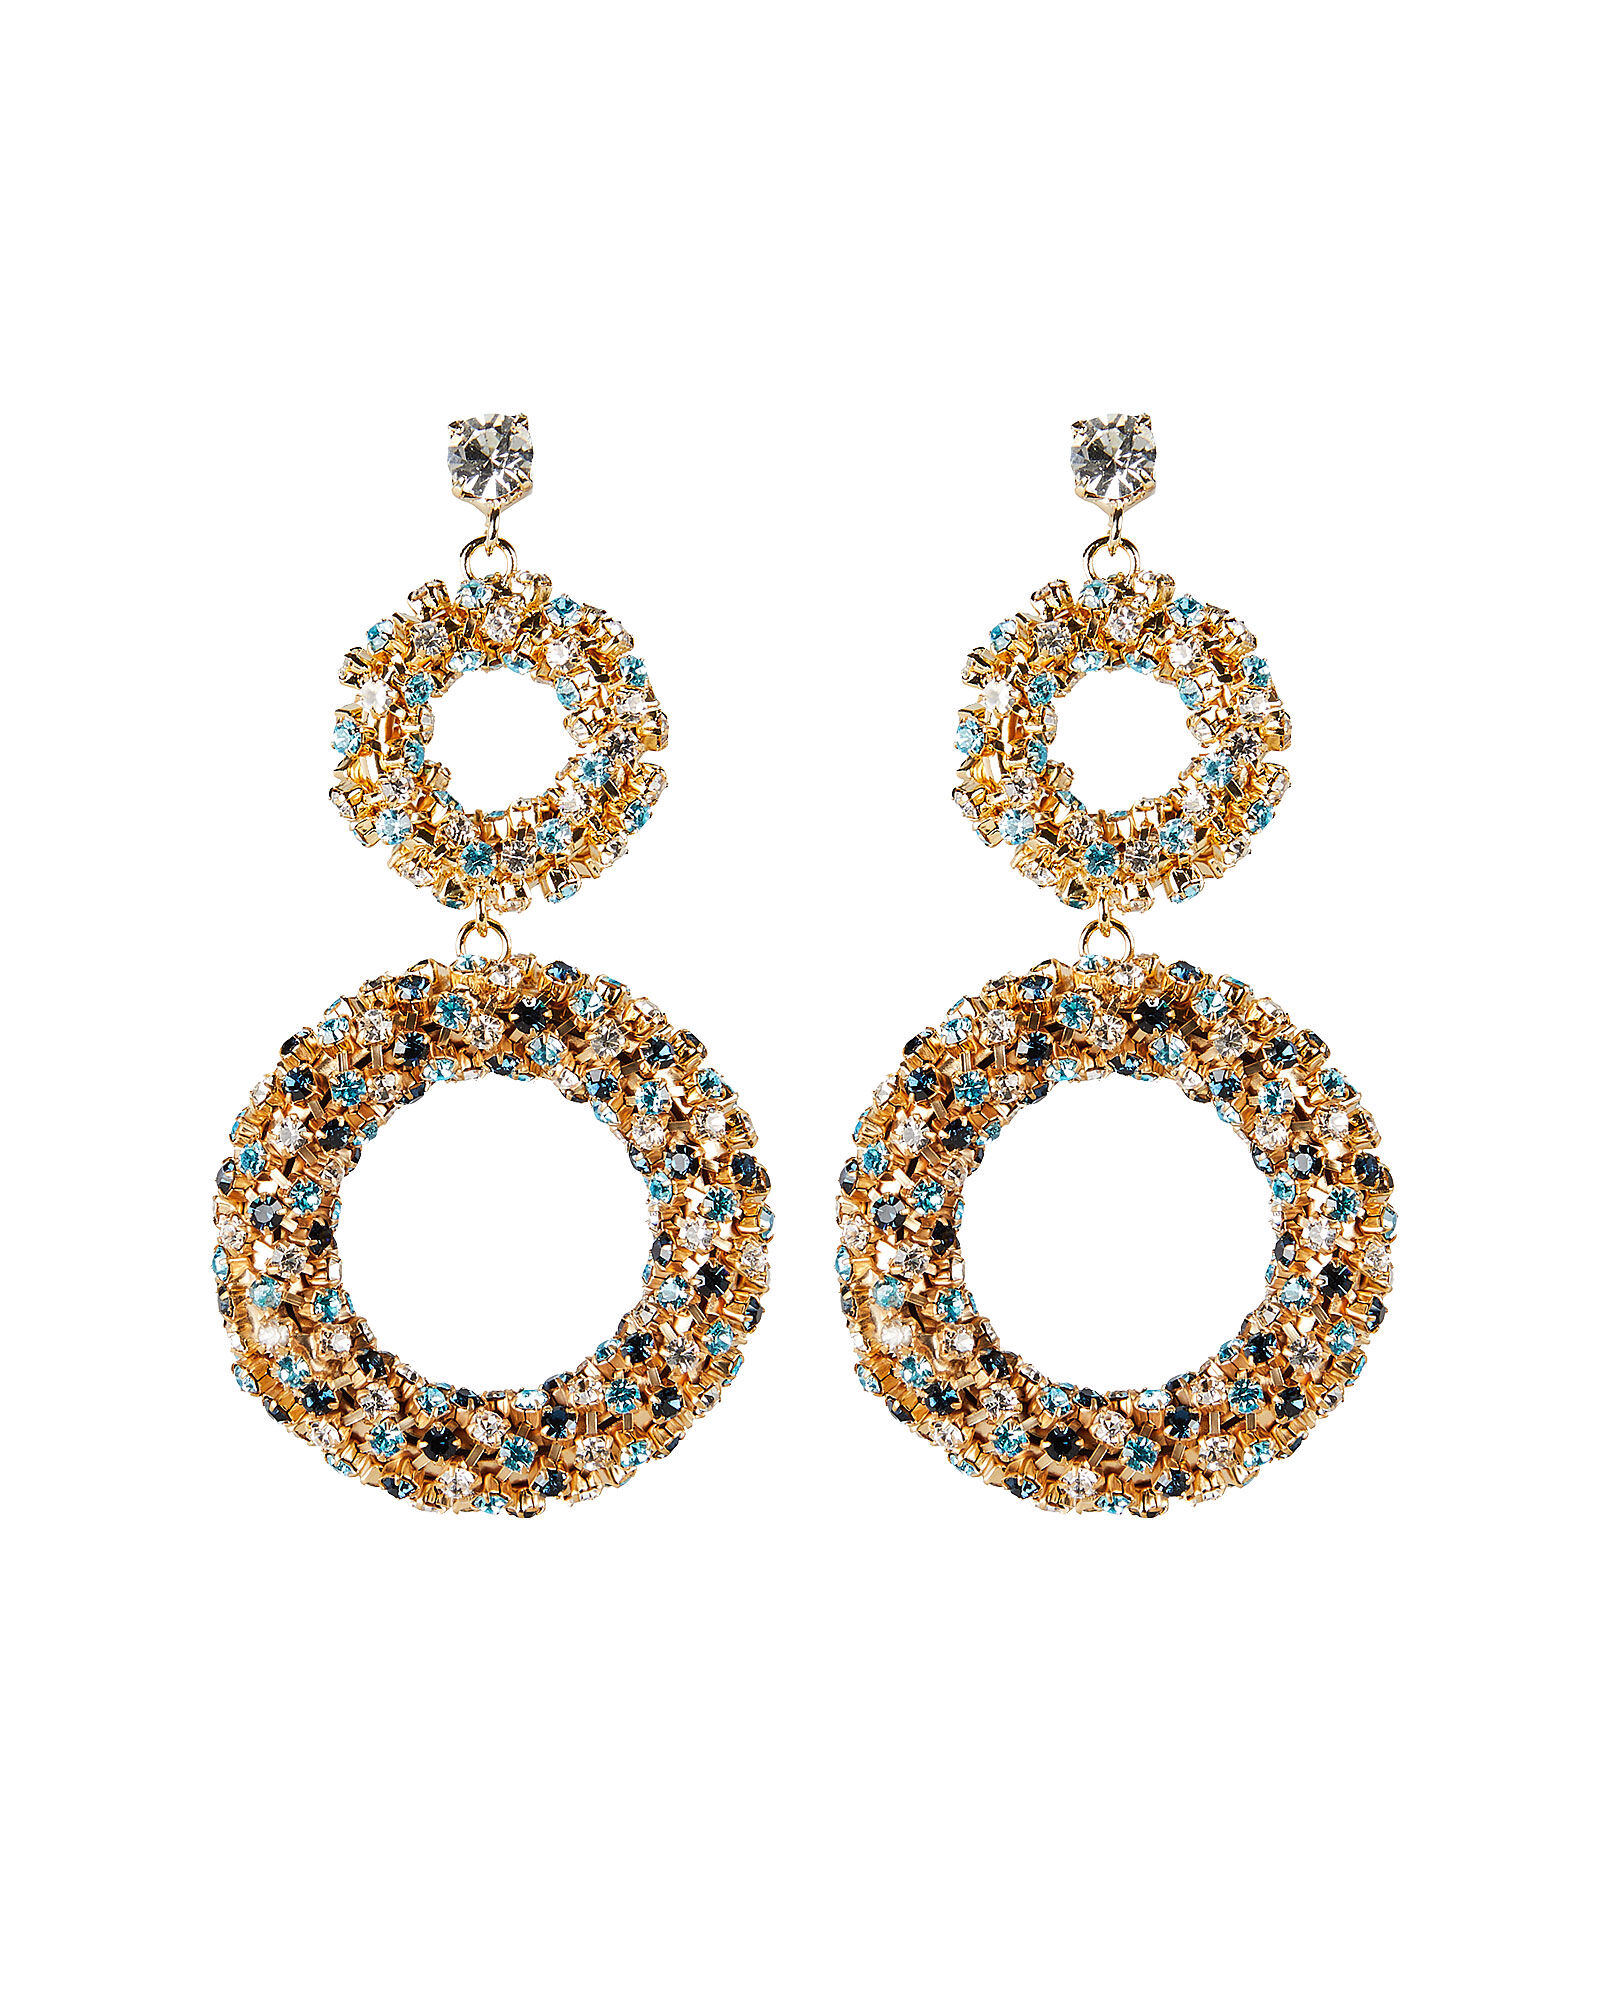 Caos Crystal Ring Drop Earrings, CLEAR, hi-res